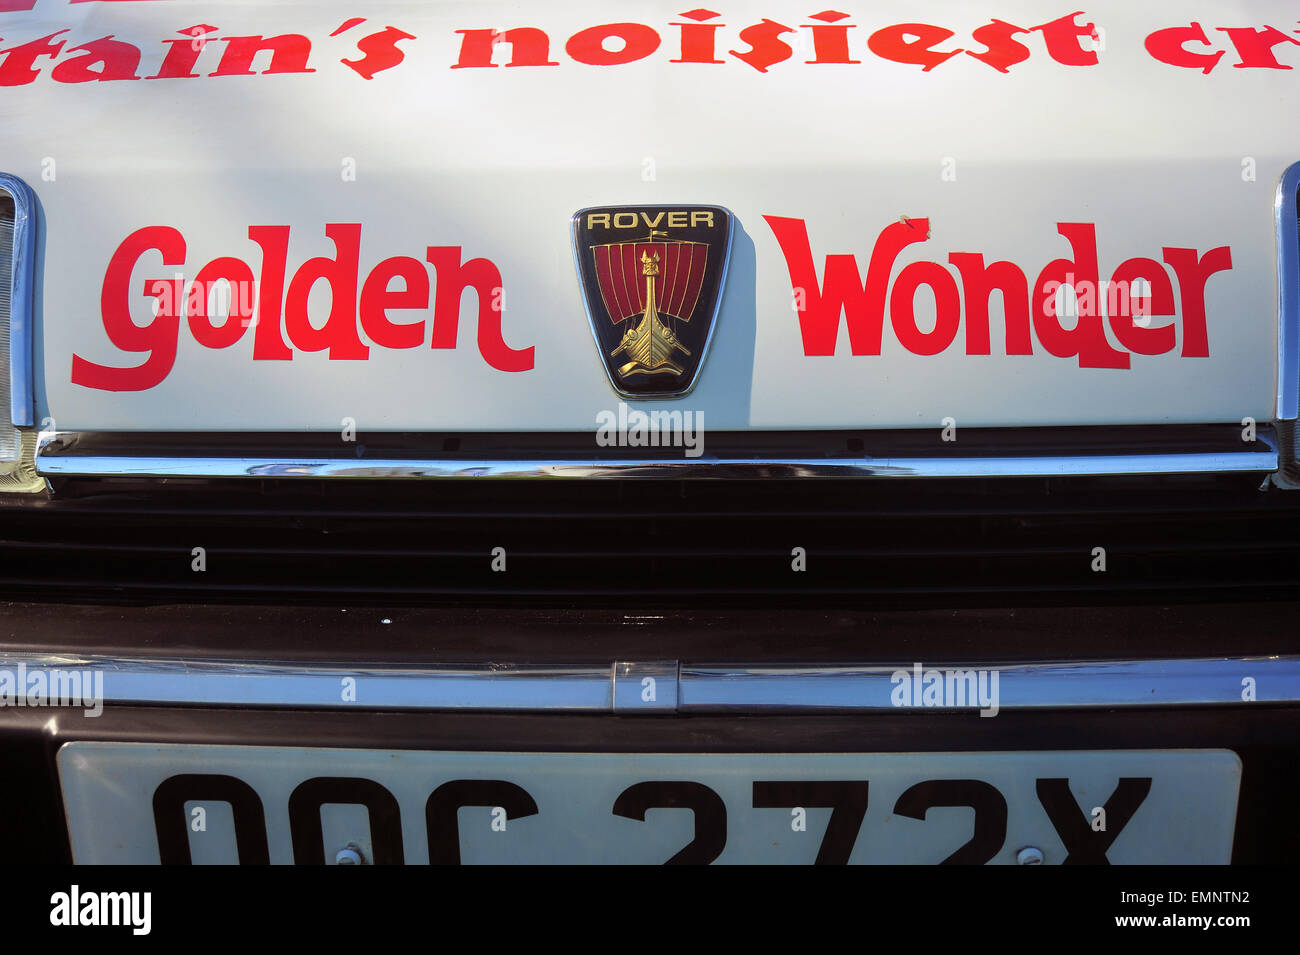 A close view of the badge of a Rover car with Golden Wonder sponsorship on it. - Stock Image